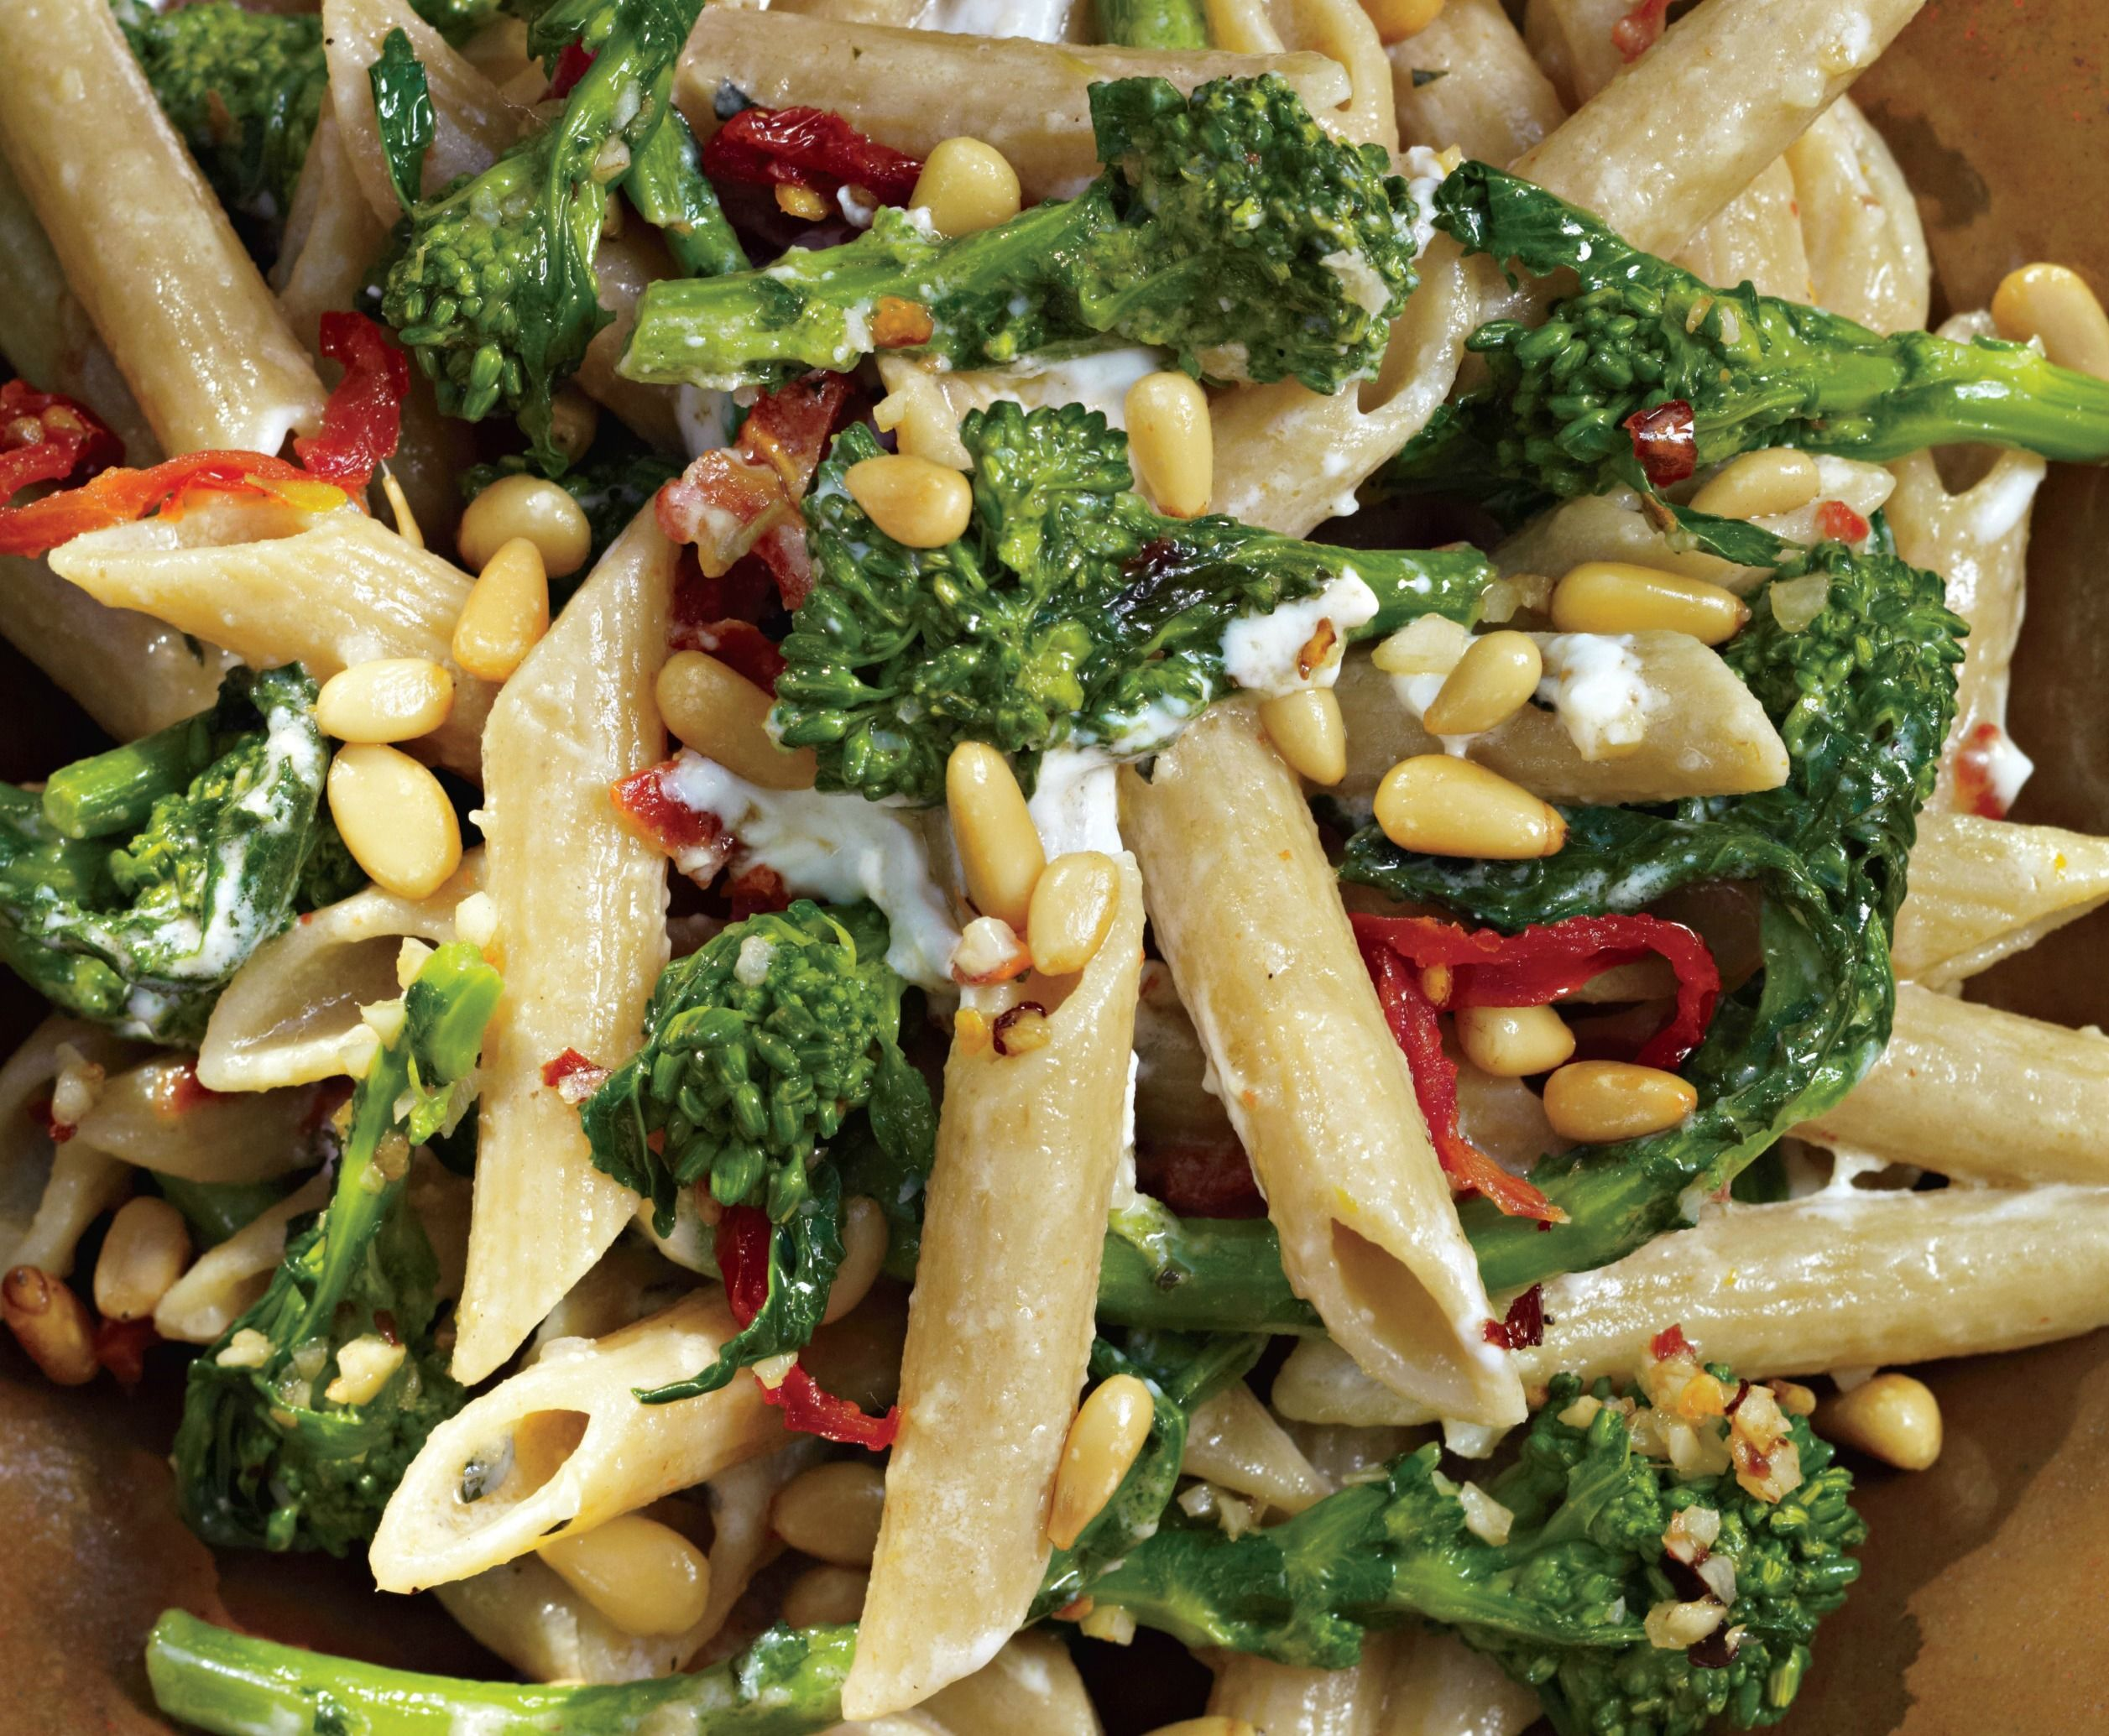 Looking for a pasta recipe? This pasta is filled with goat cheese, broccoli and sun-dried tomatoes.